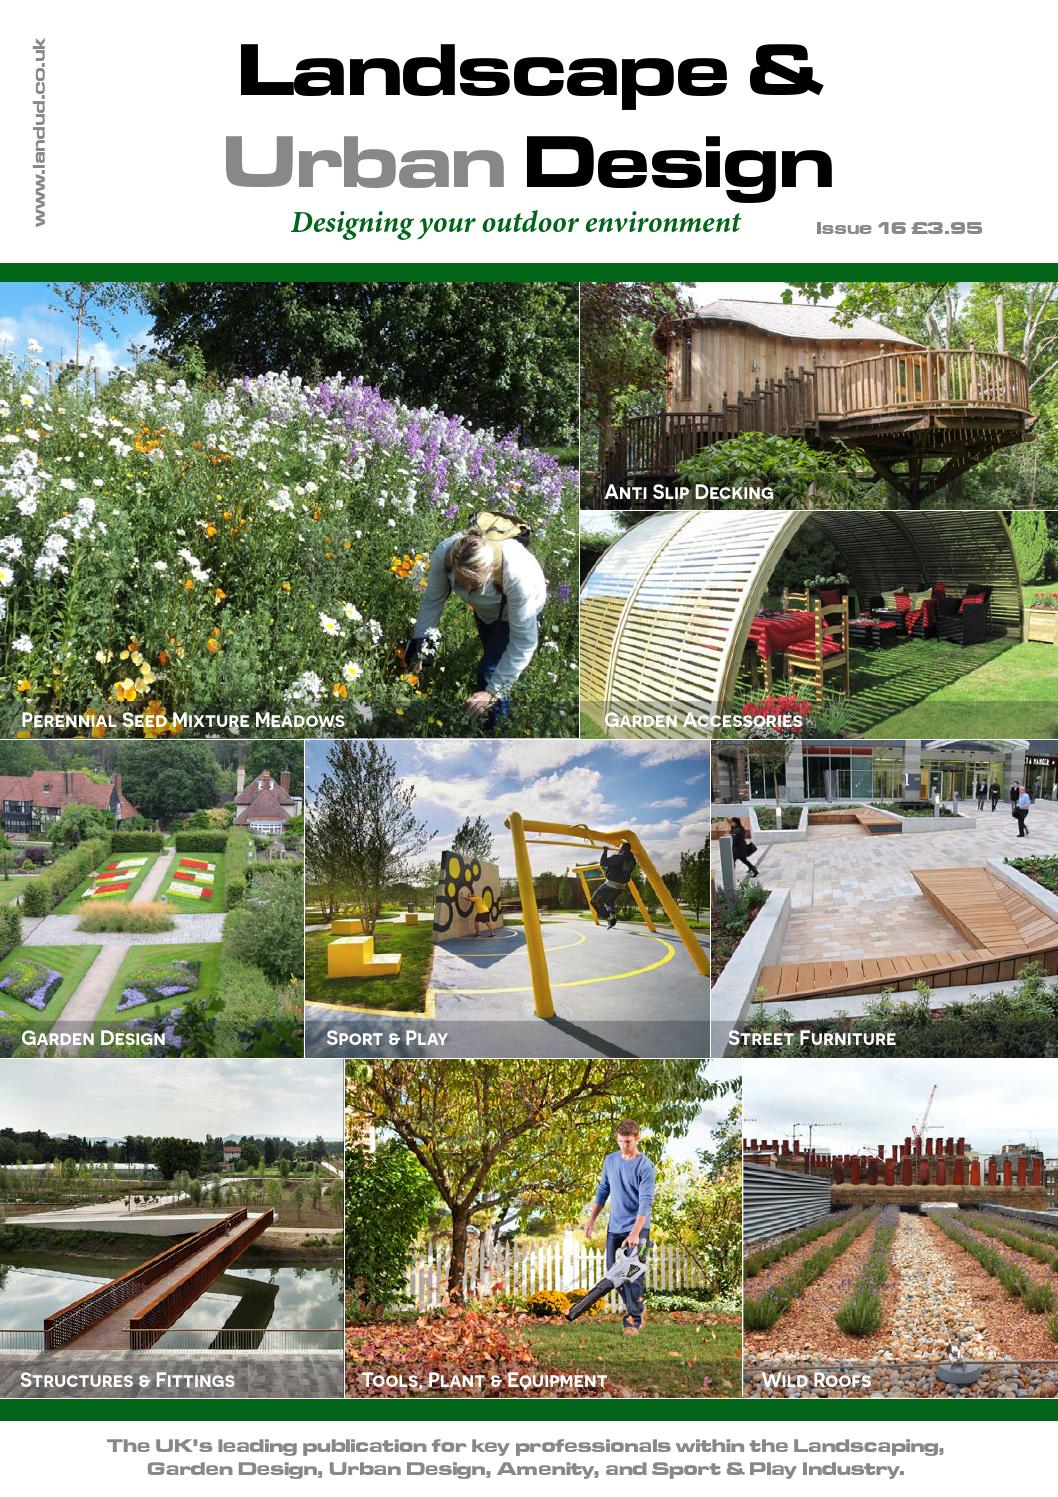 Landscape Urban Design Issue 16 2015 By Mh Media Global Issuu